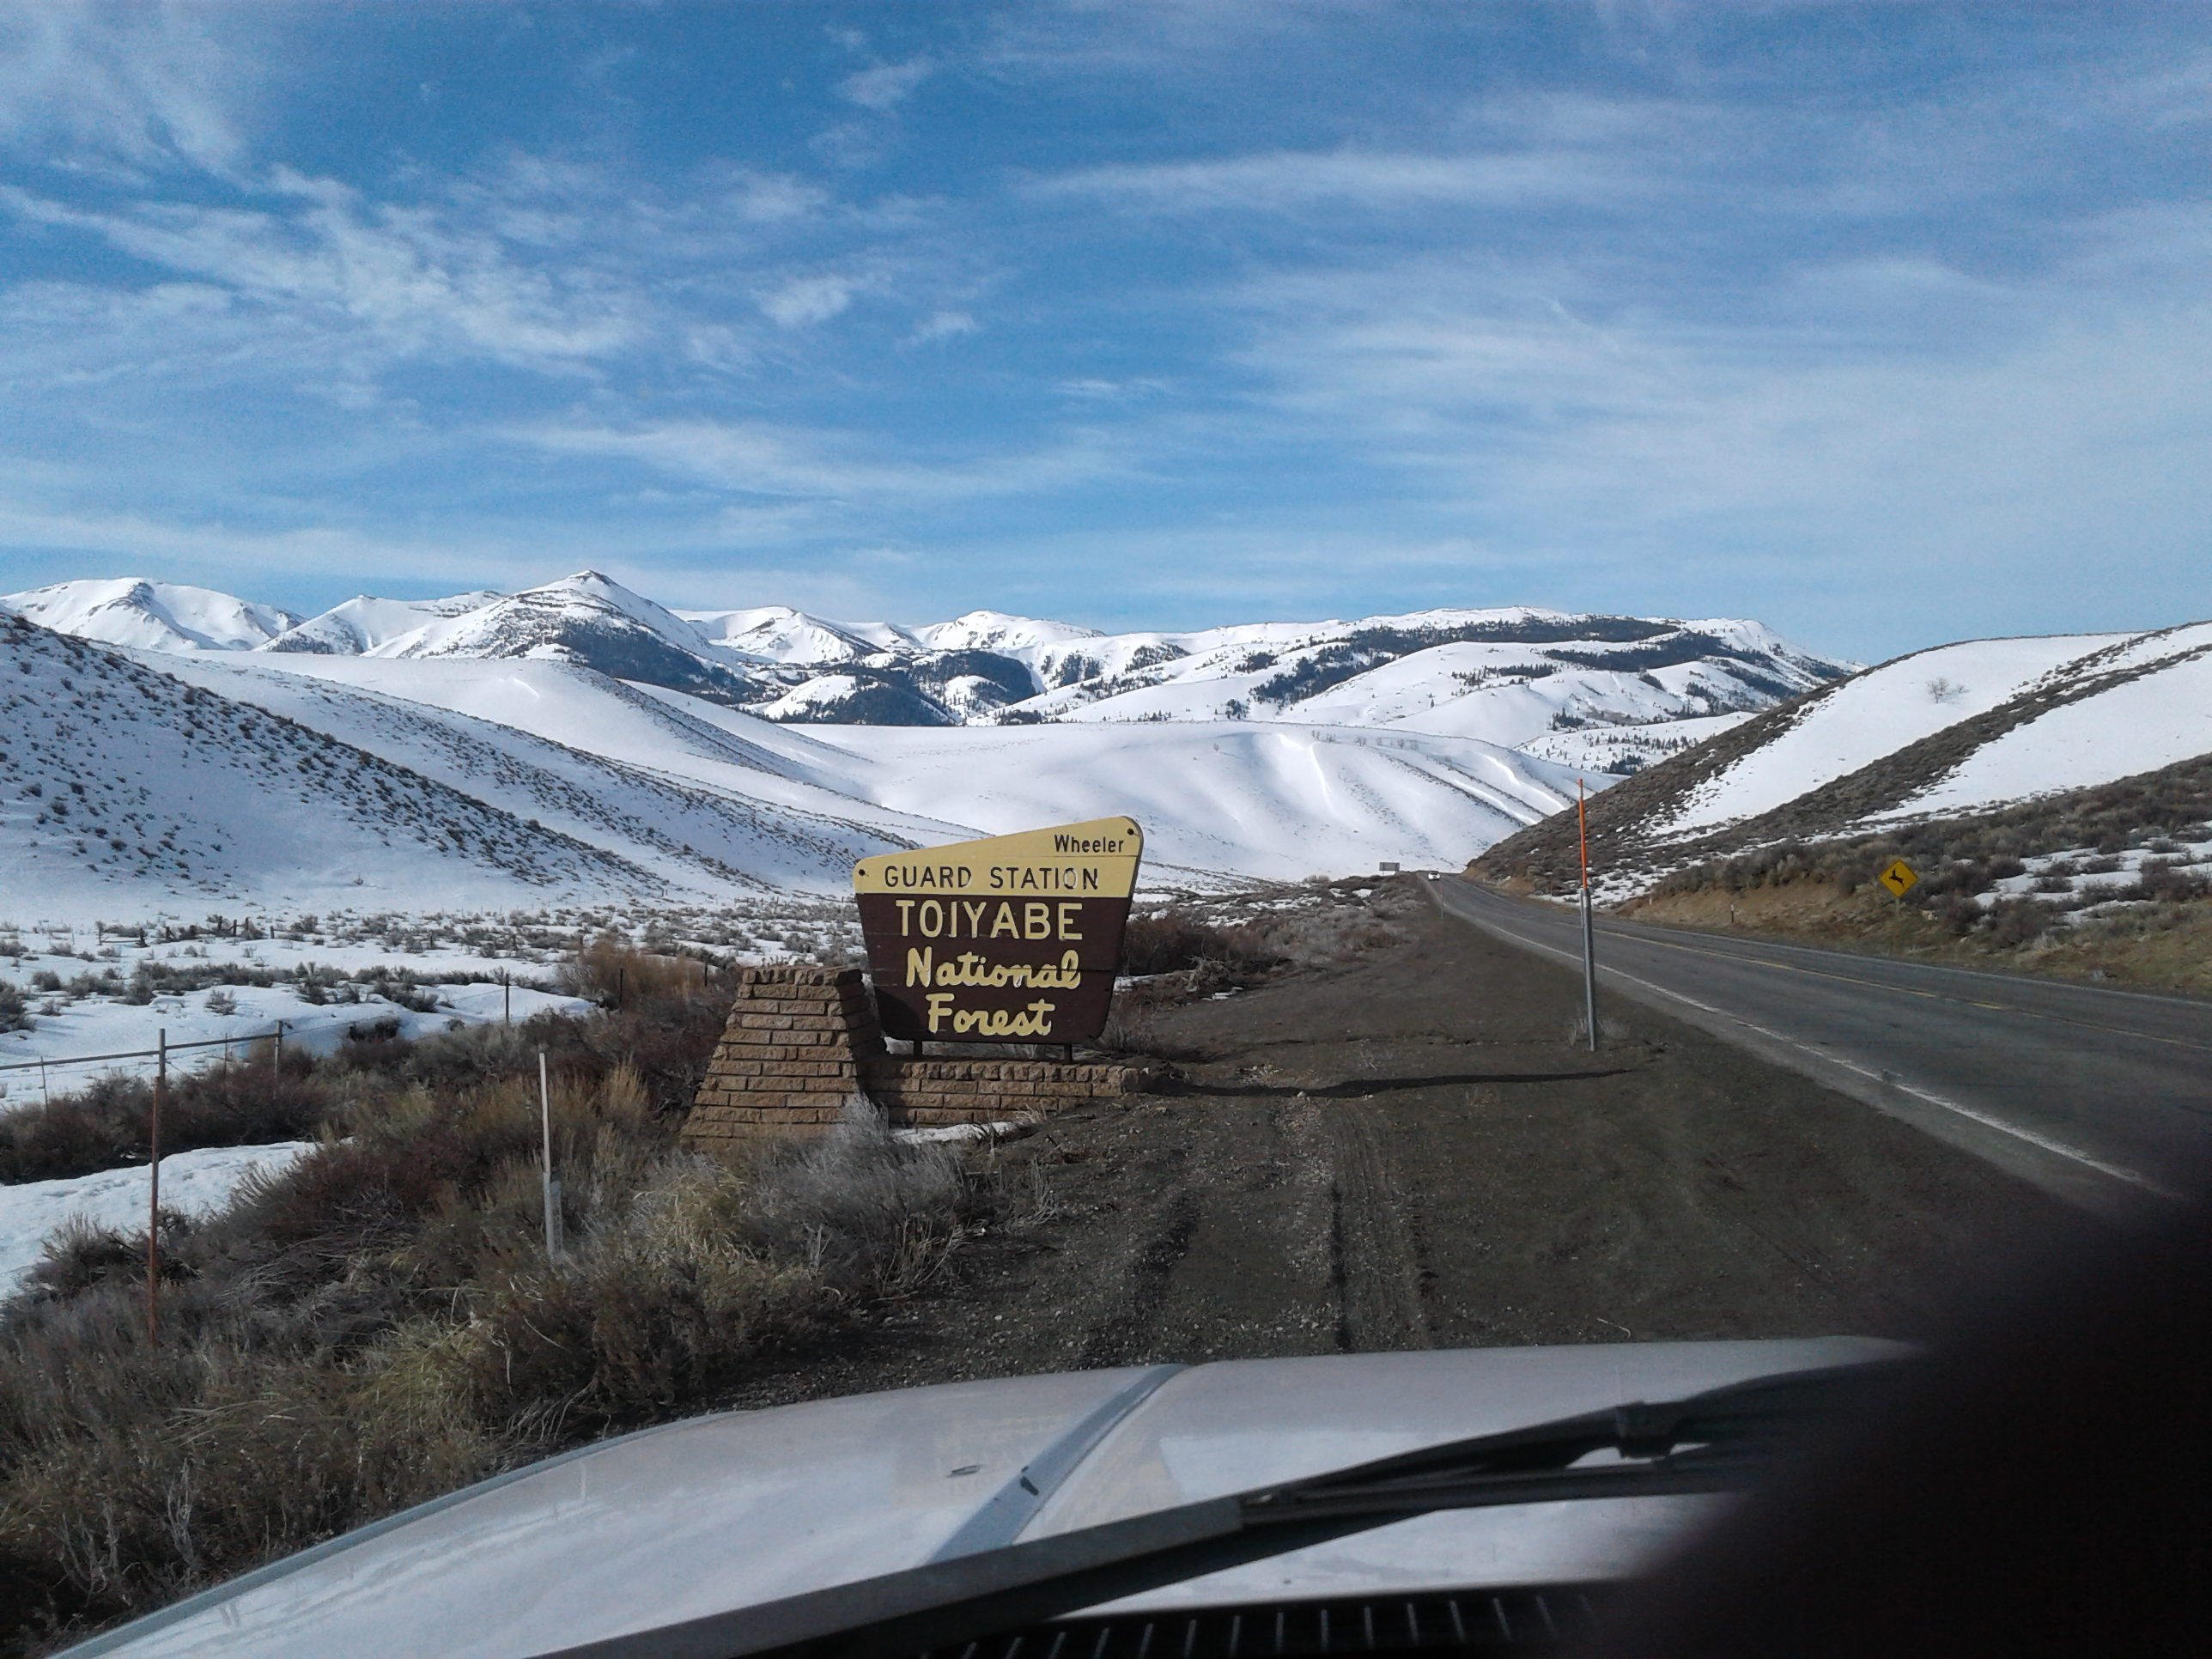 07 - Lee Vining Toiyabe National Forest